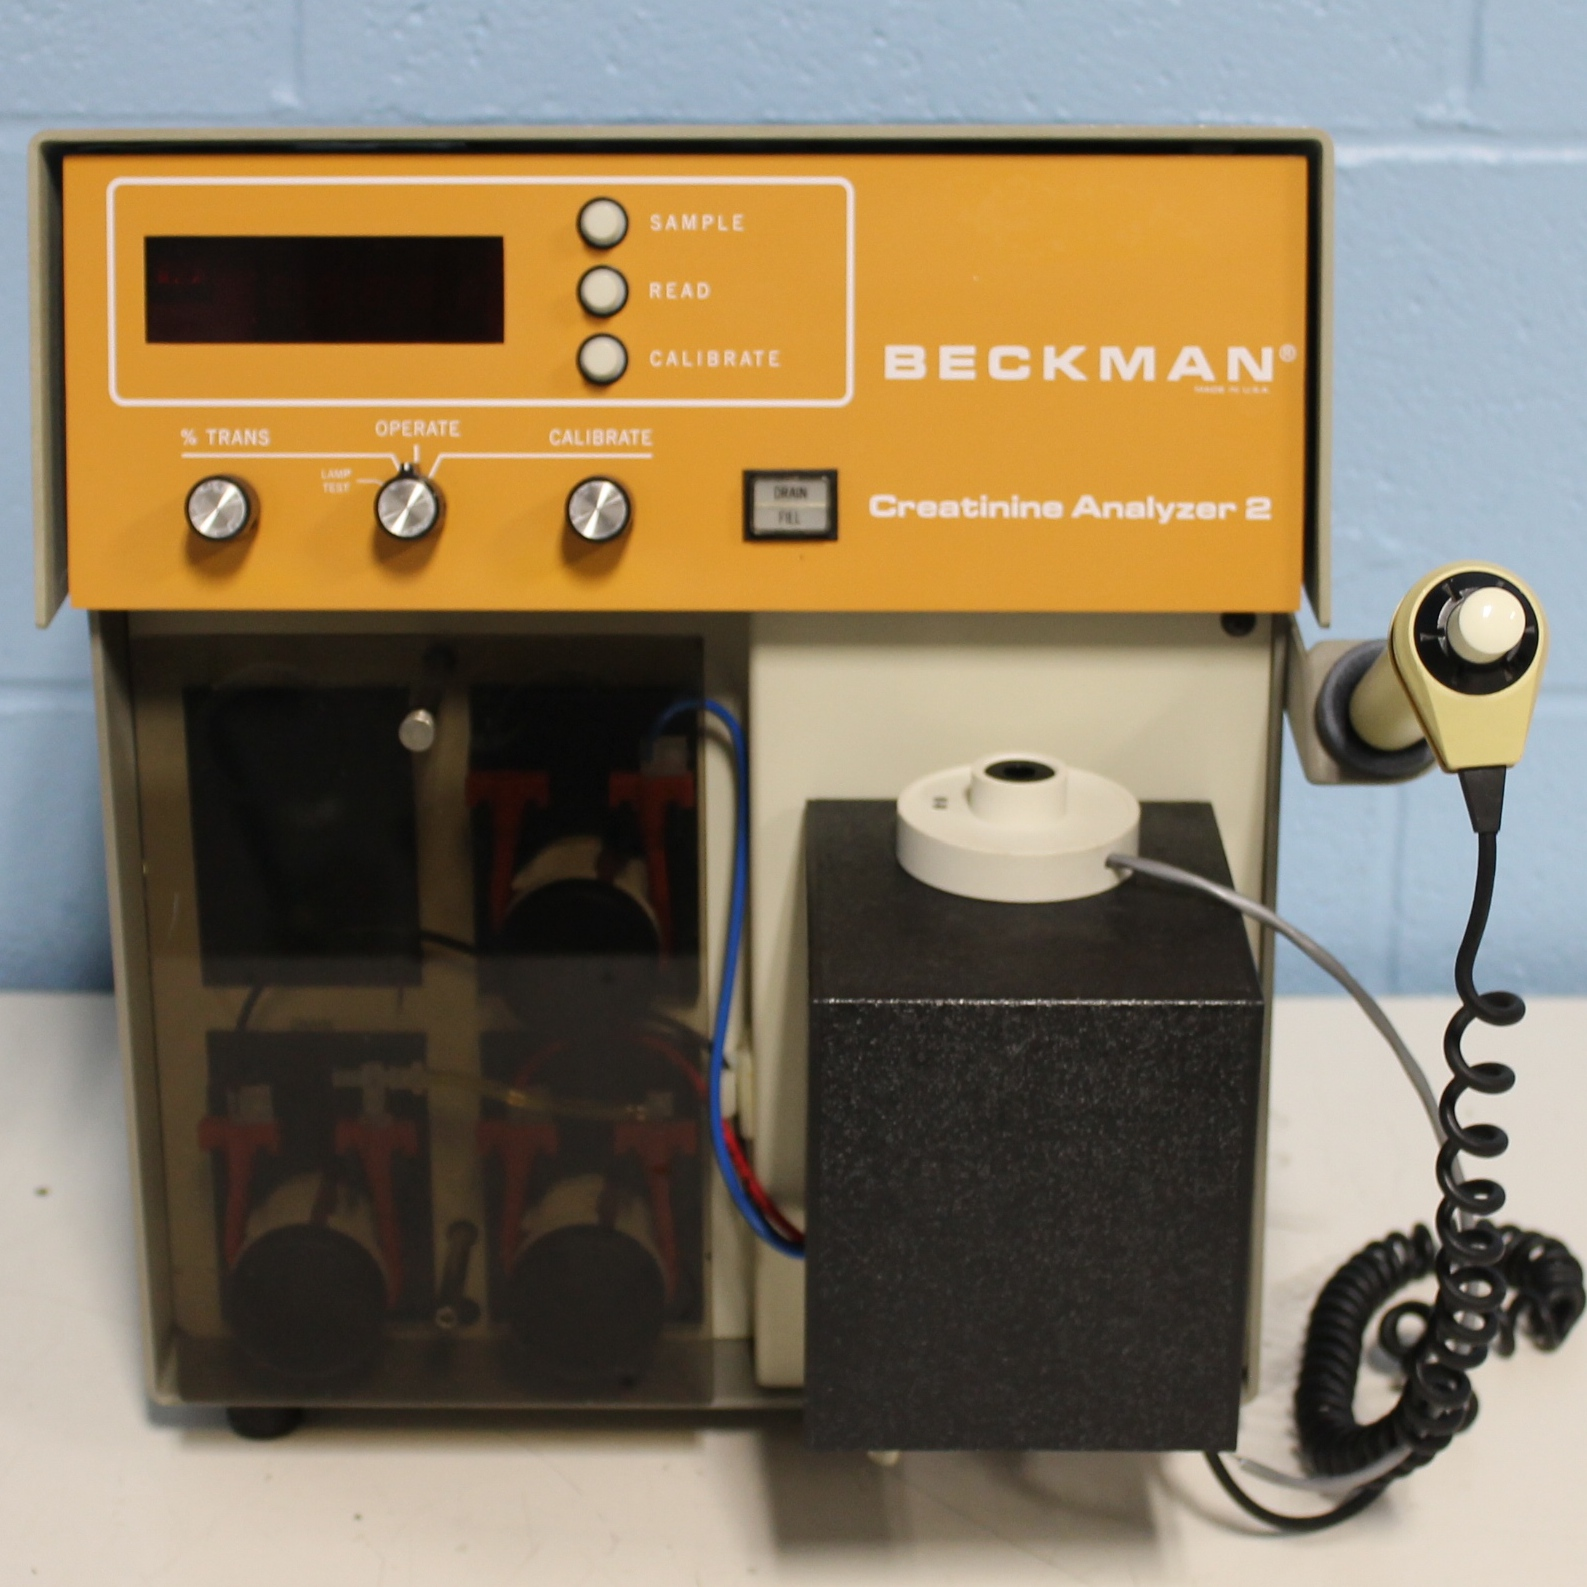 Beckman Creatinine Analyzer 2 Image